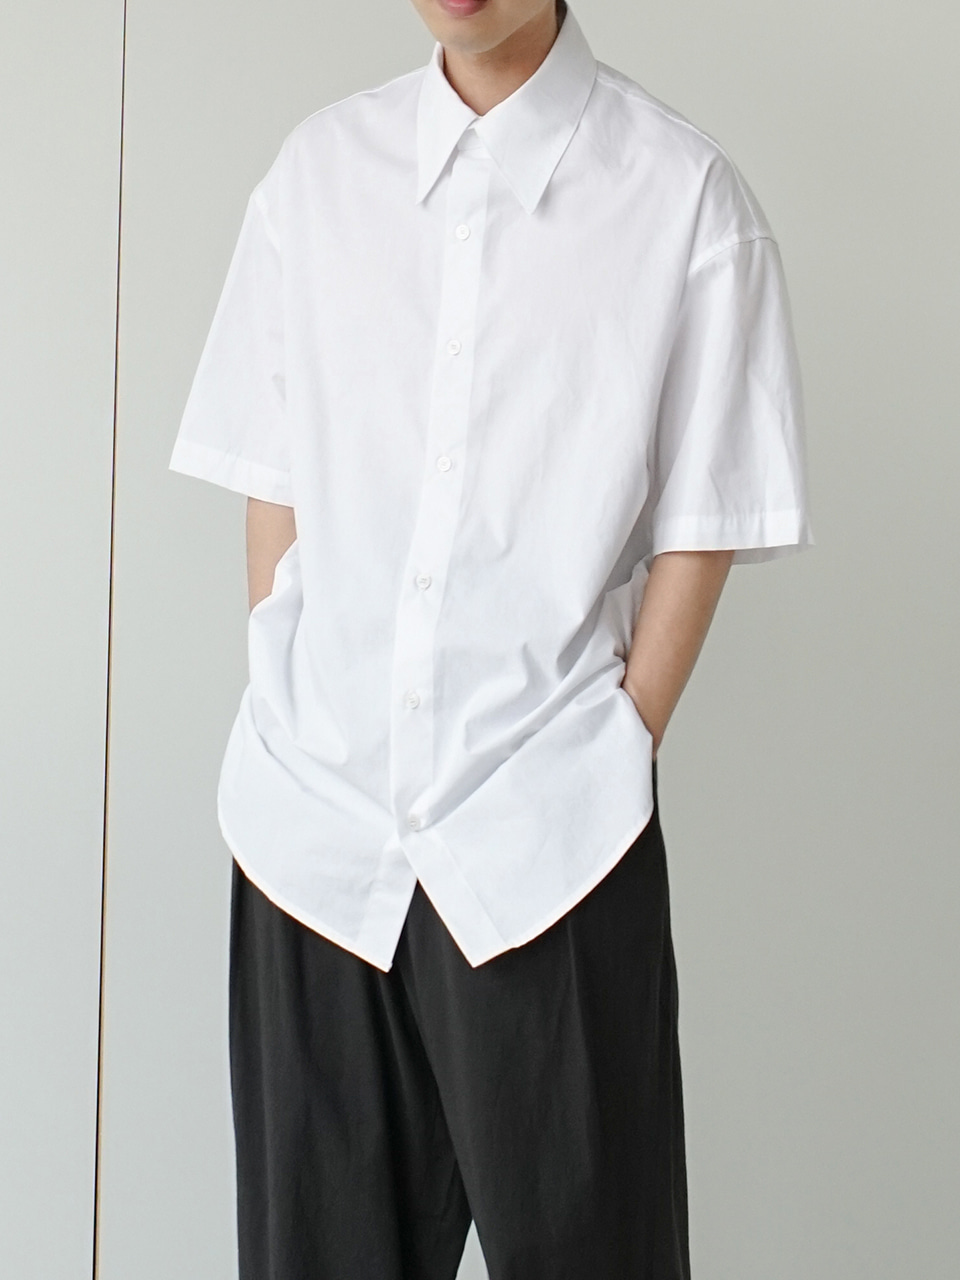 Cus Big Collar Half Shirt (2color)